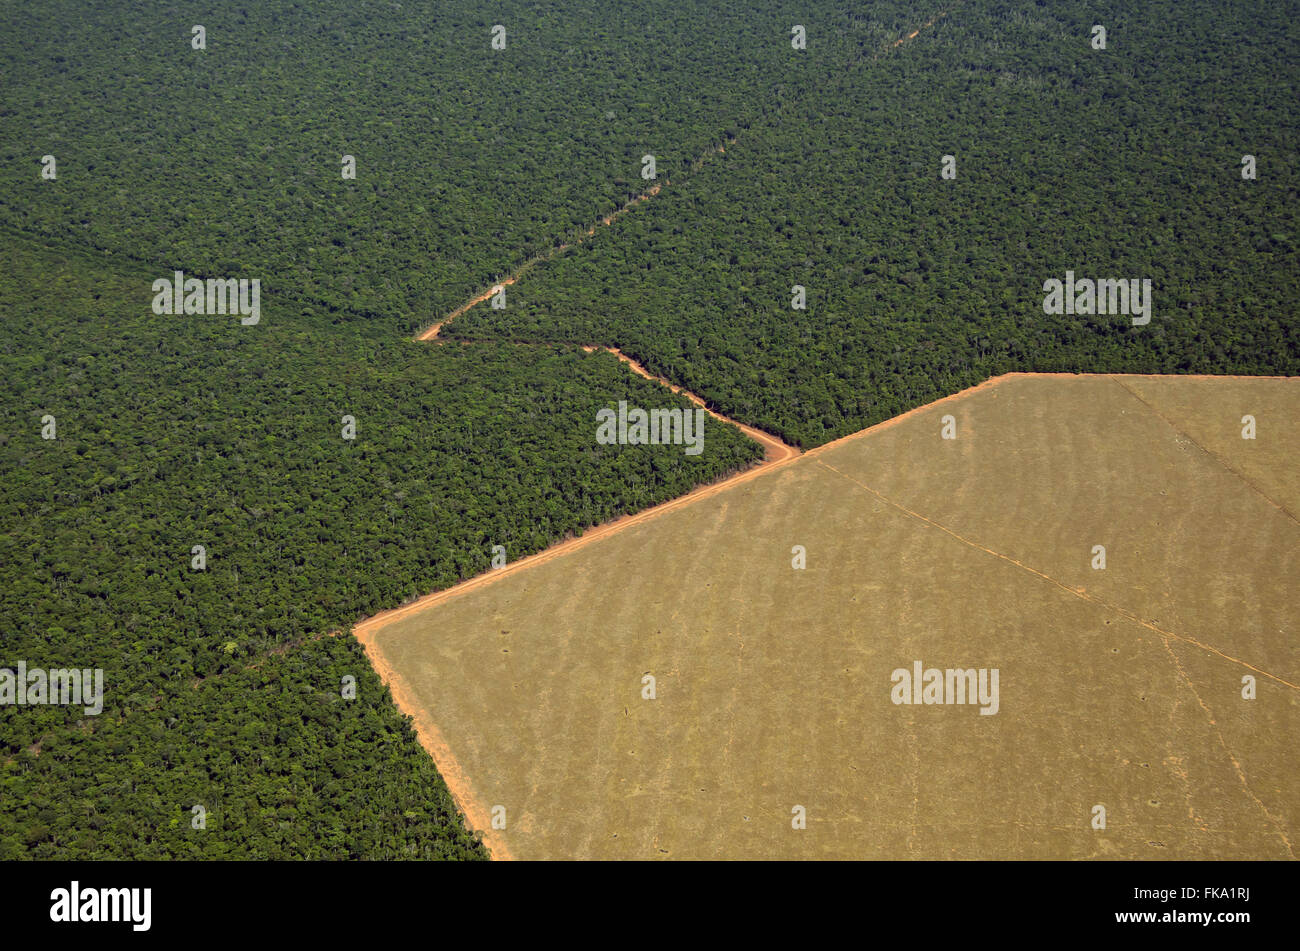 Aerial view of the area preserved and limit area deforested for farming in the middle of Savana Stock Photo